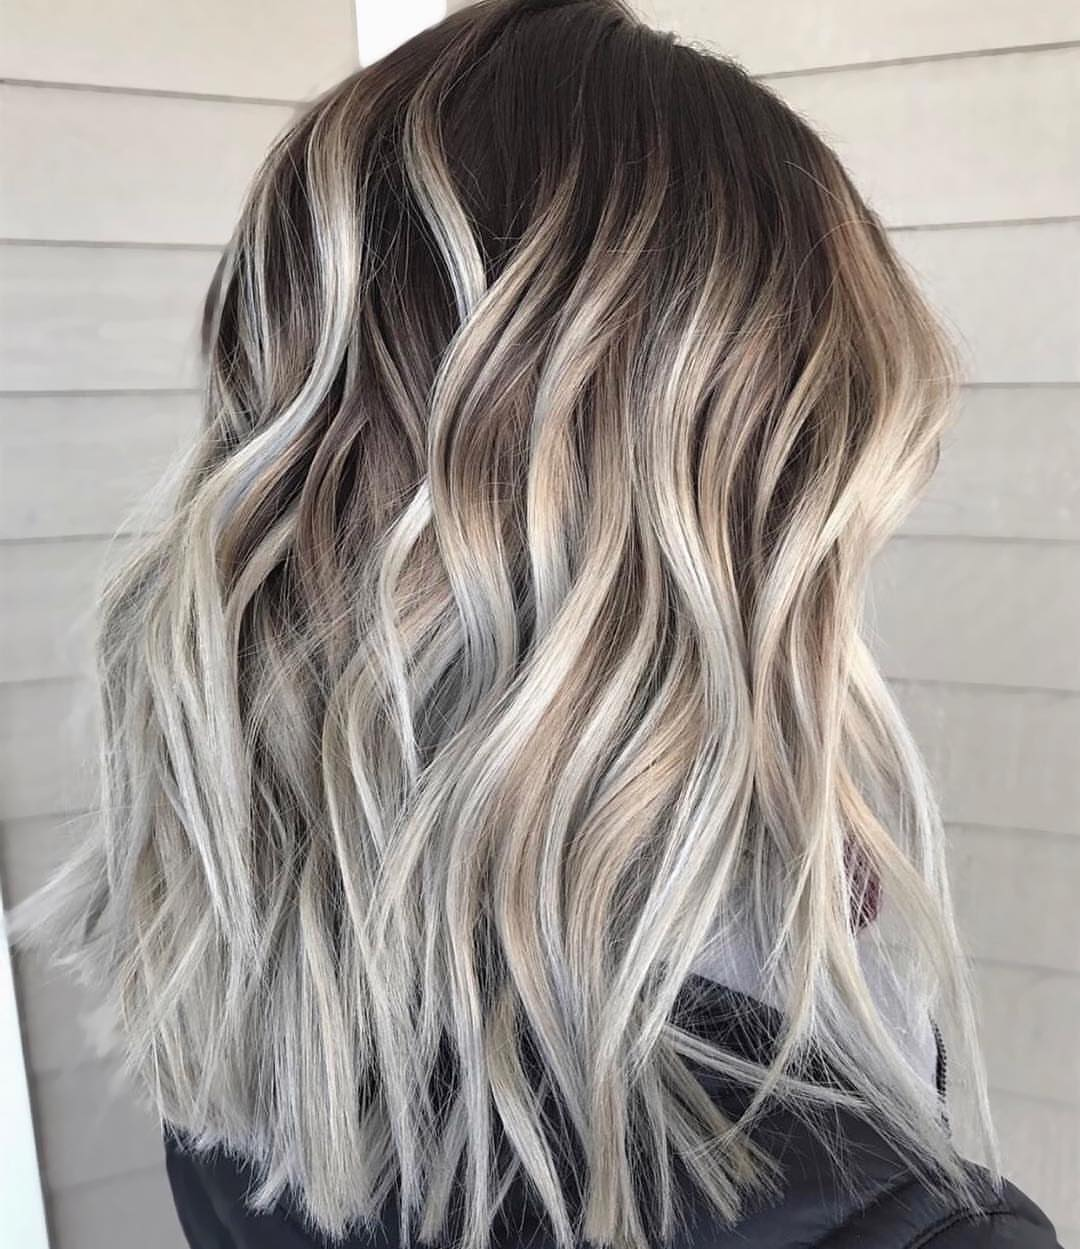 50 hottest ombre hair color ideas for 2018 – ombre hairstyles